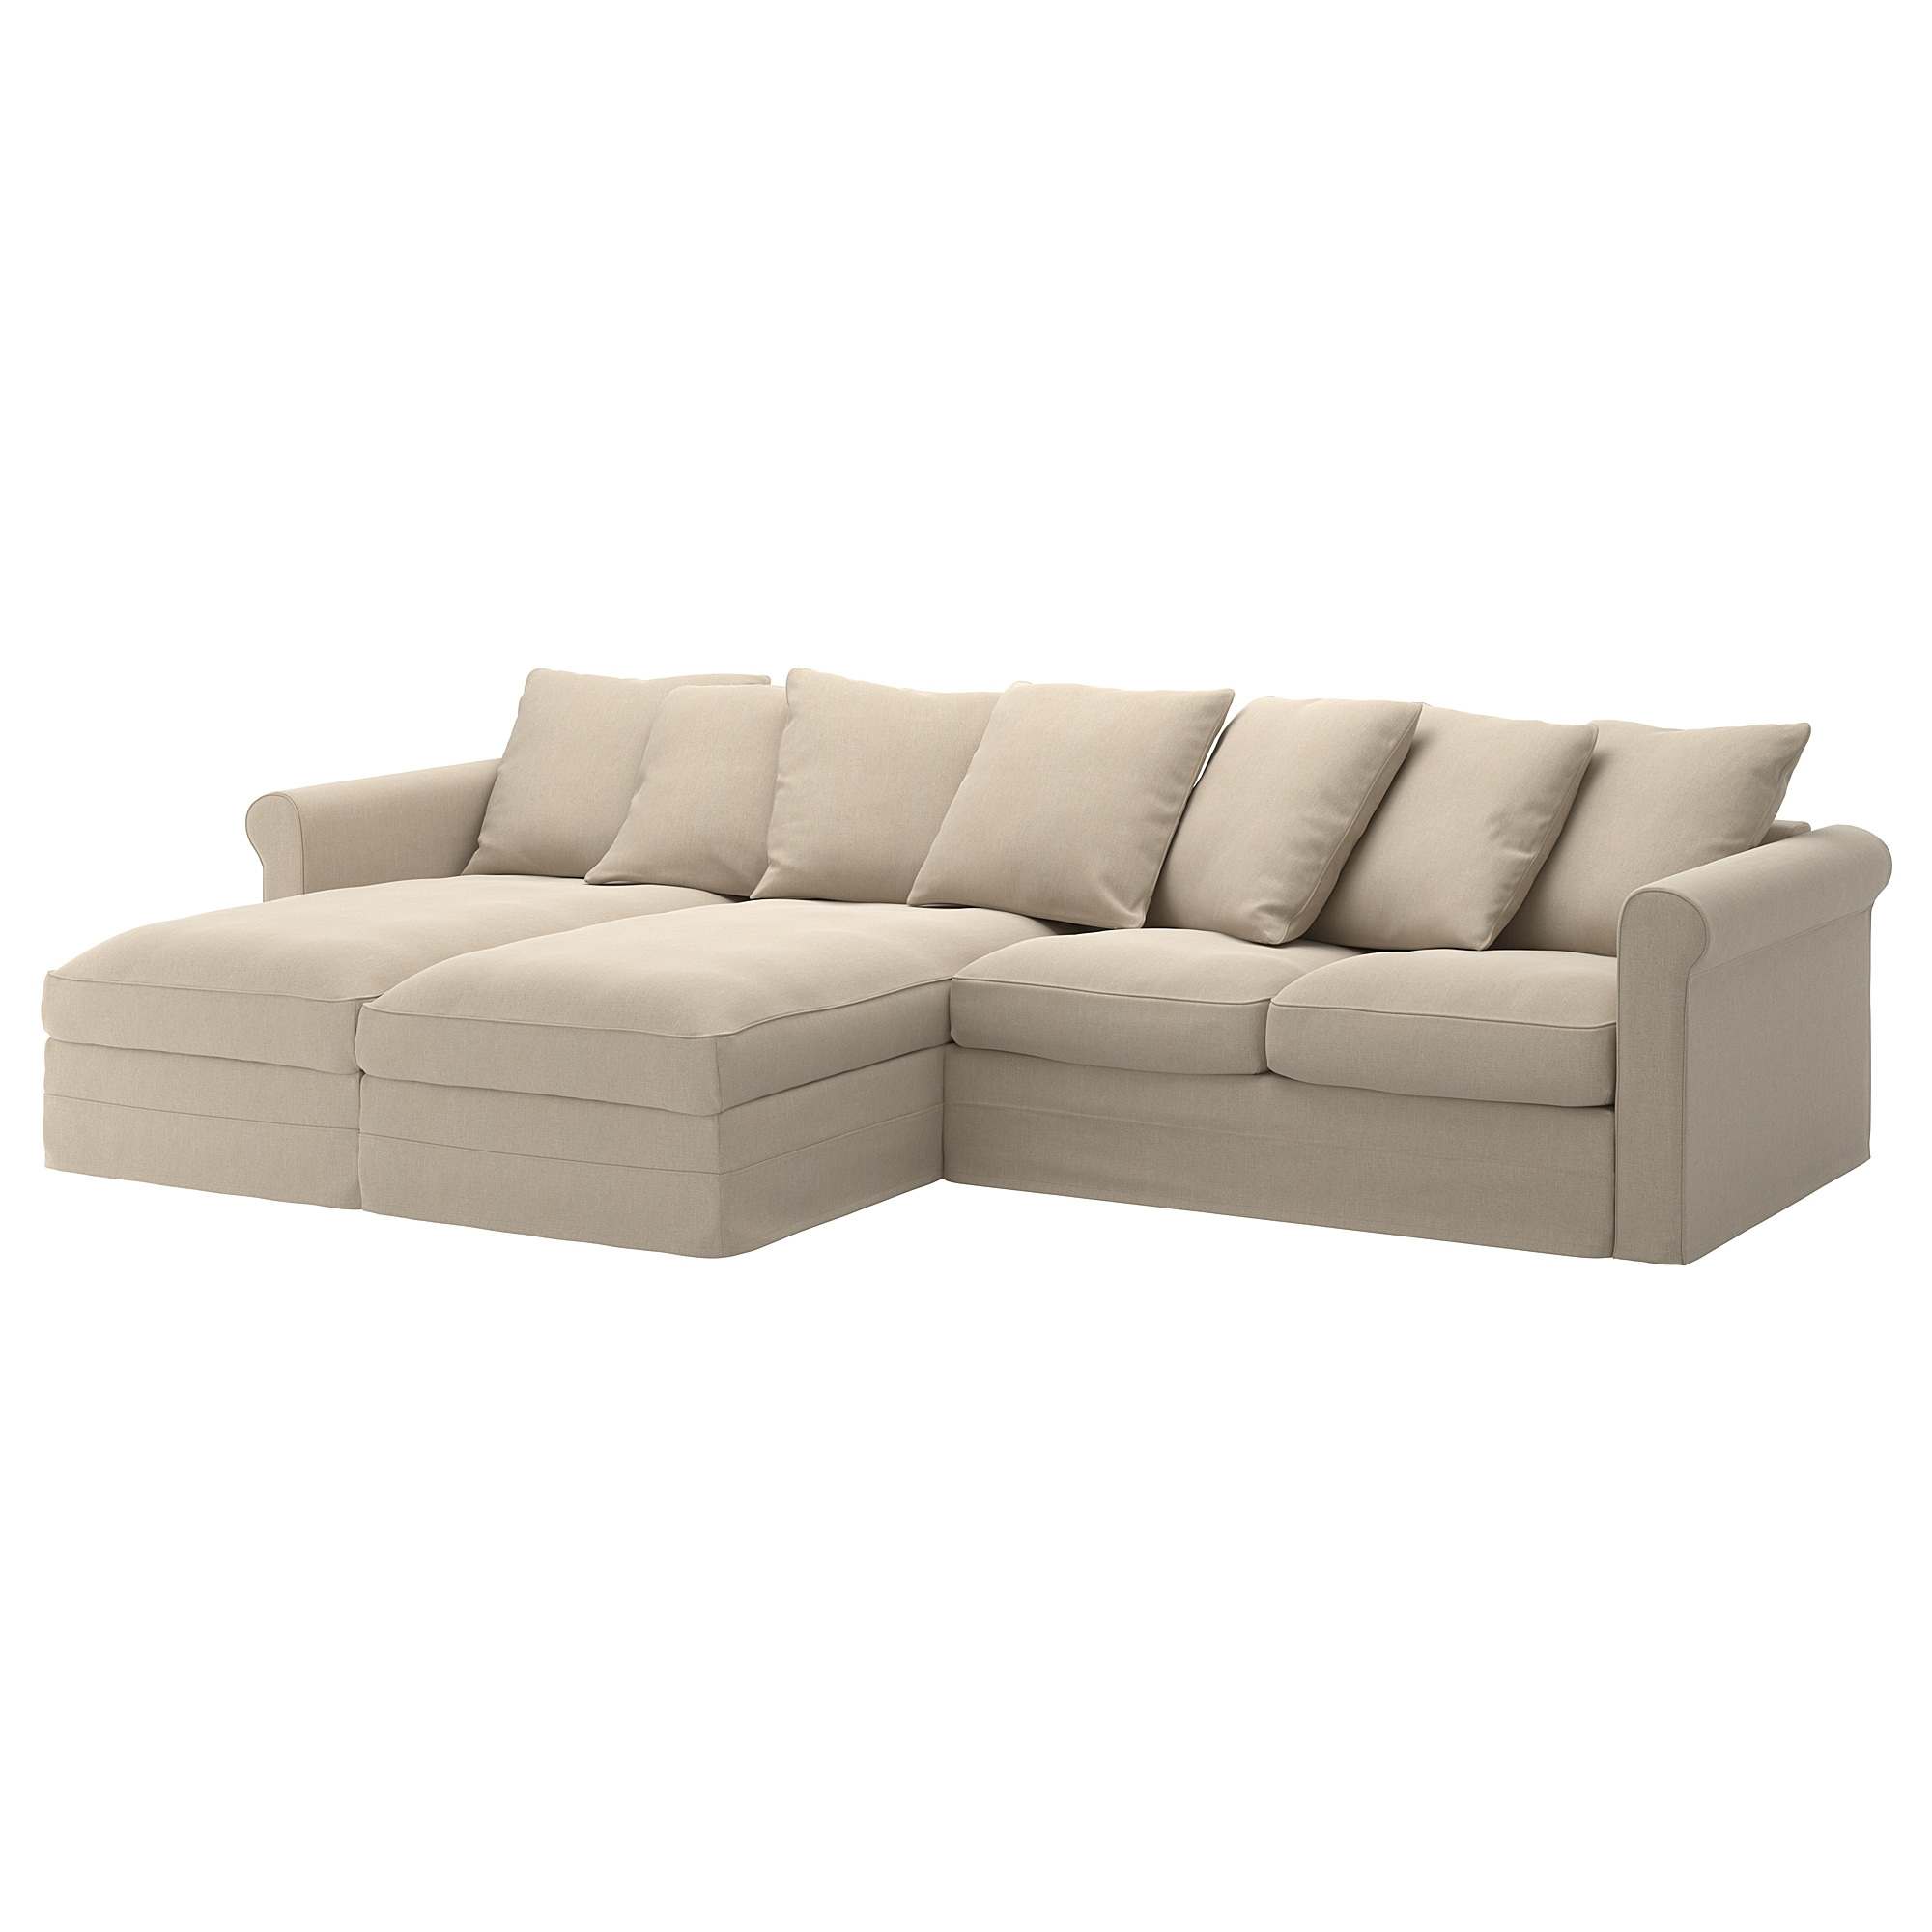 Modular Sofas & Sectional Sofas | Ikea Pertaining To 100X80 Sectional Sofas (View 5 of 10)